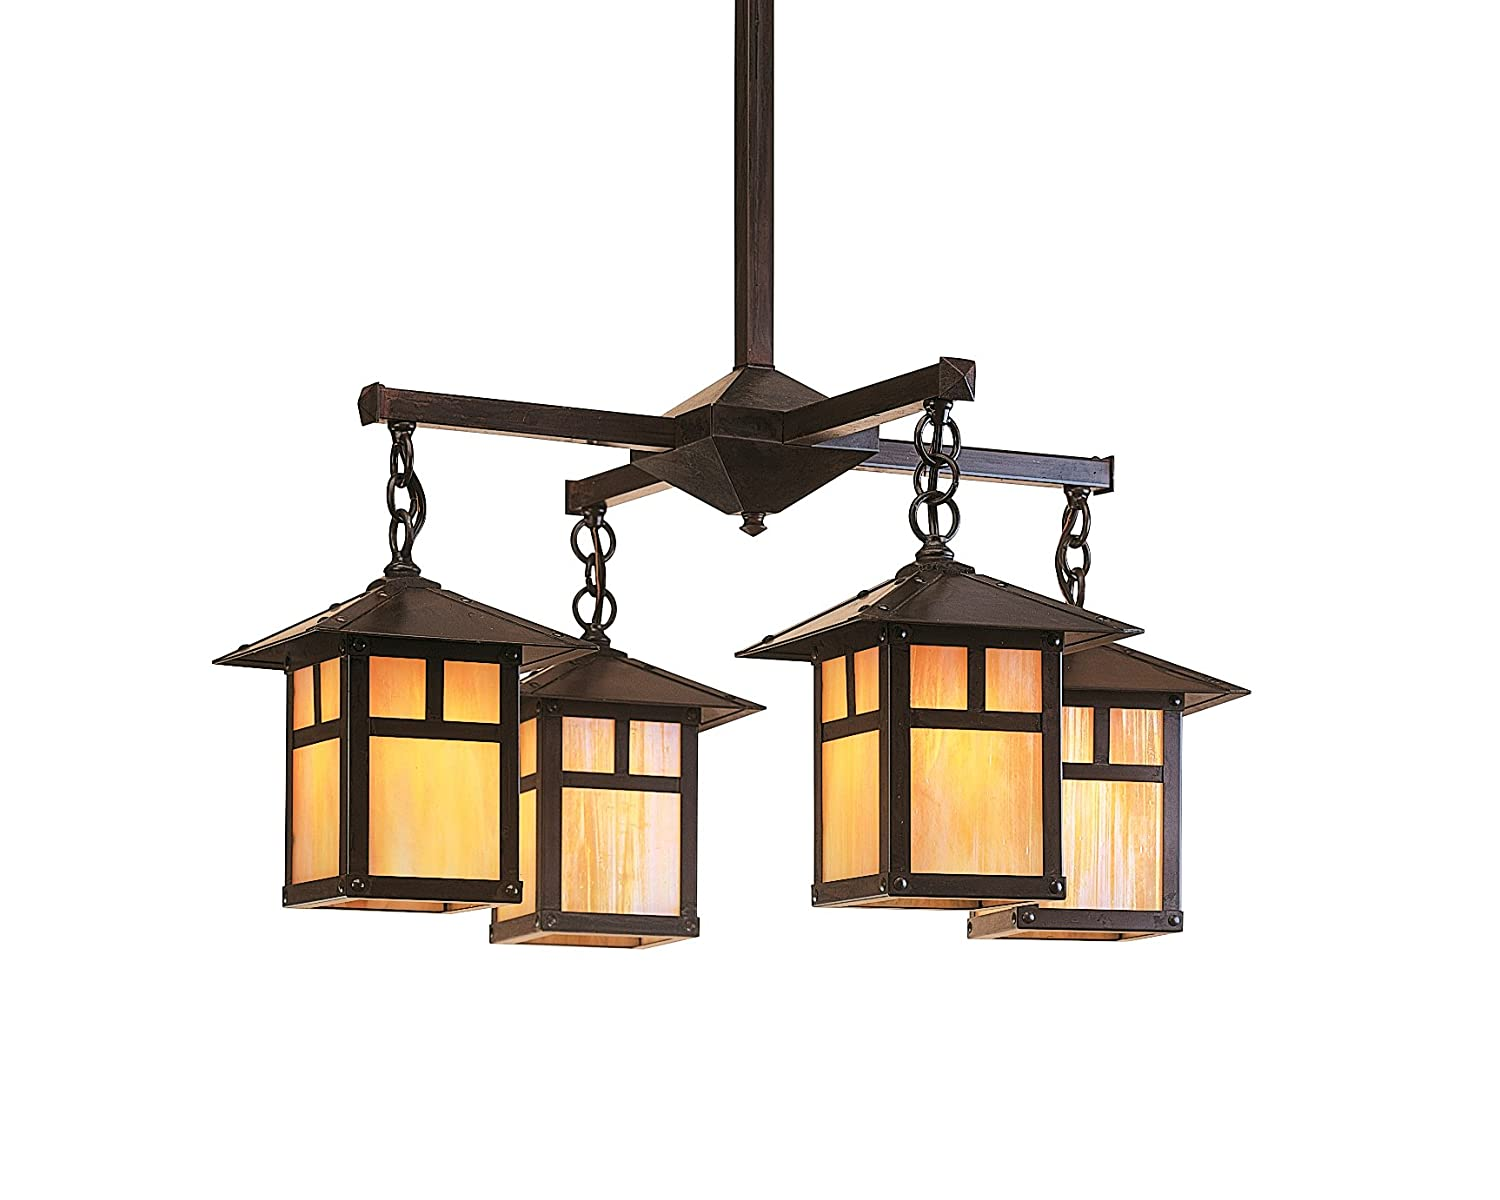 Amazon.com: Arroyo Craftsman ech-7/4sfof-ac Evergreen 4 luz ...